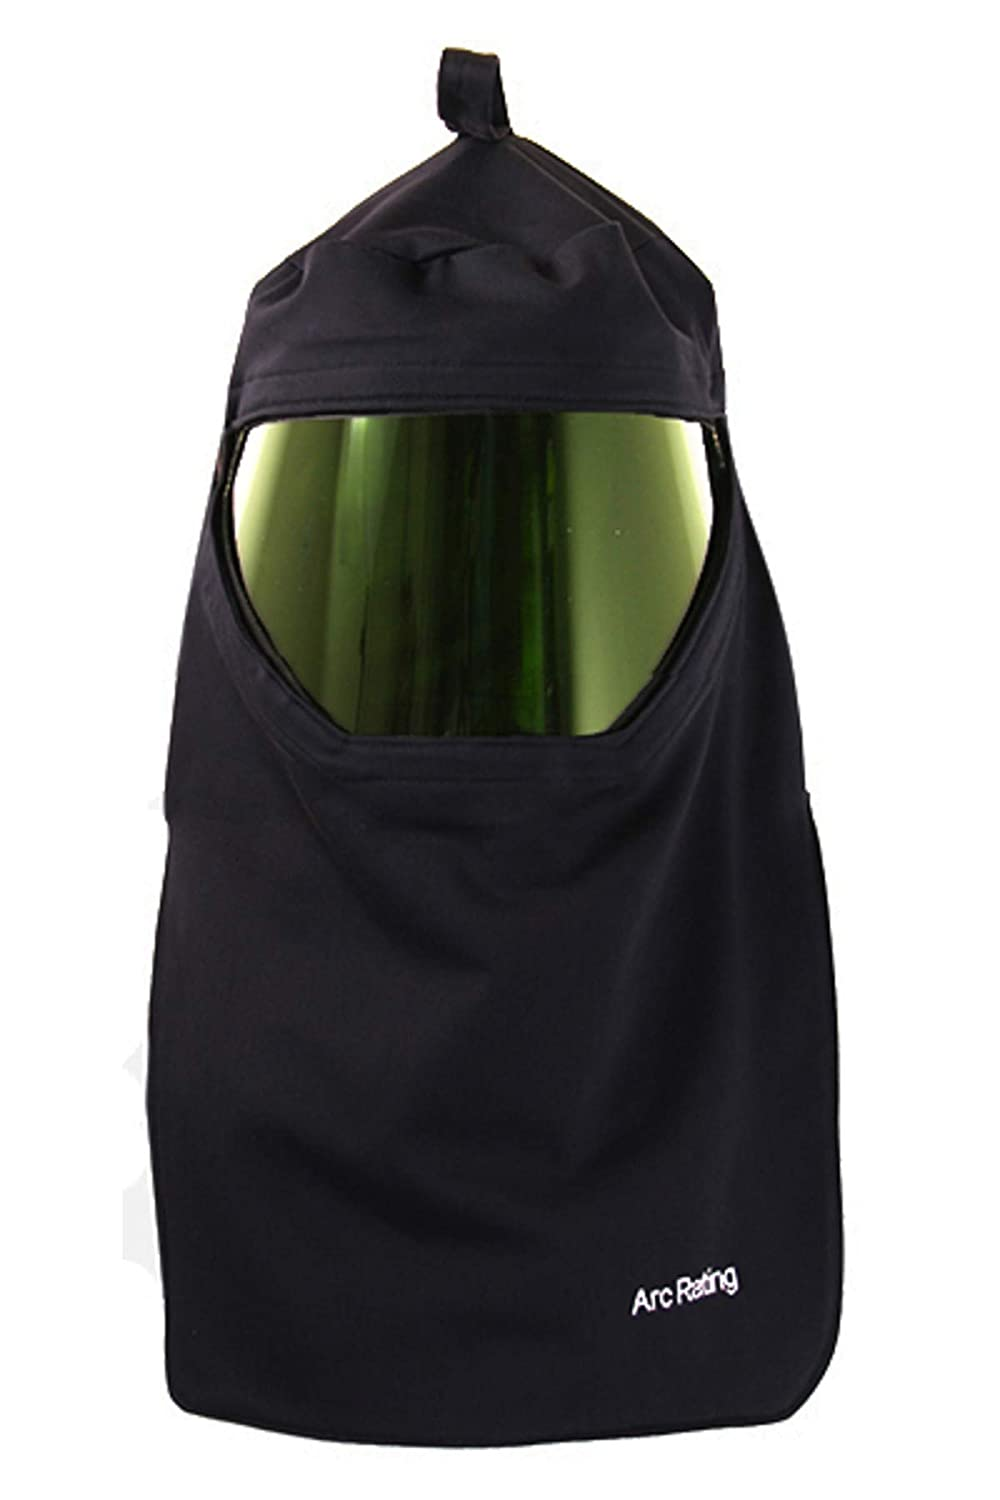 12 Calorie National Safety Apparel H65UPHH ArcGuard Arc Flash Hood with Universal Adapter Navy Inc. One Size